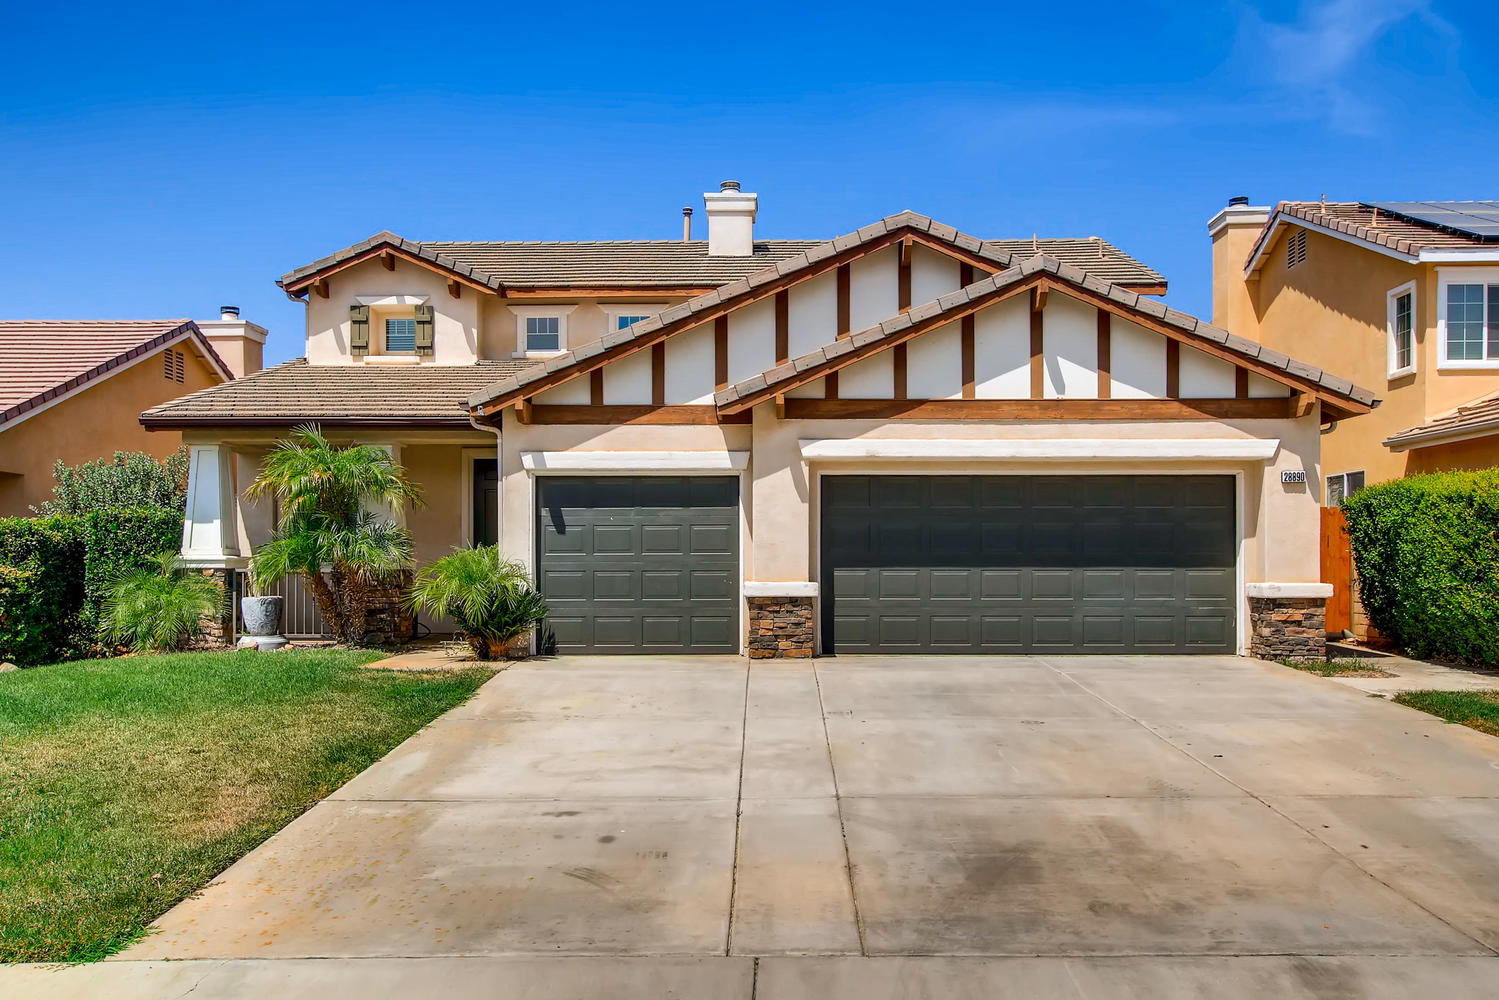 Photo of 28890 Sunburst Dr, Menifee, CA, 92584